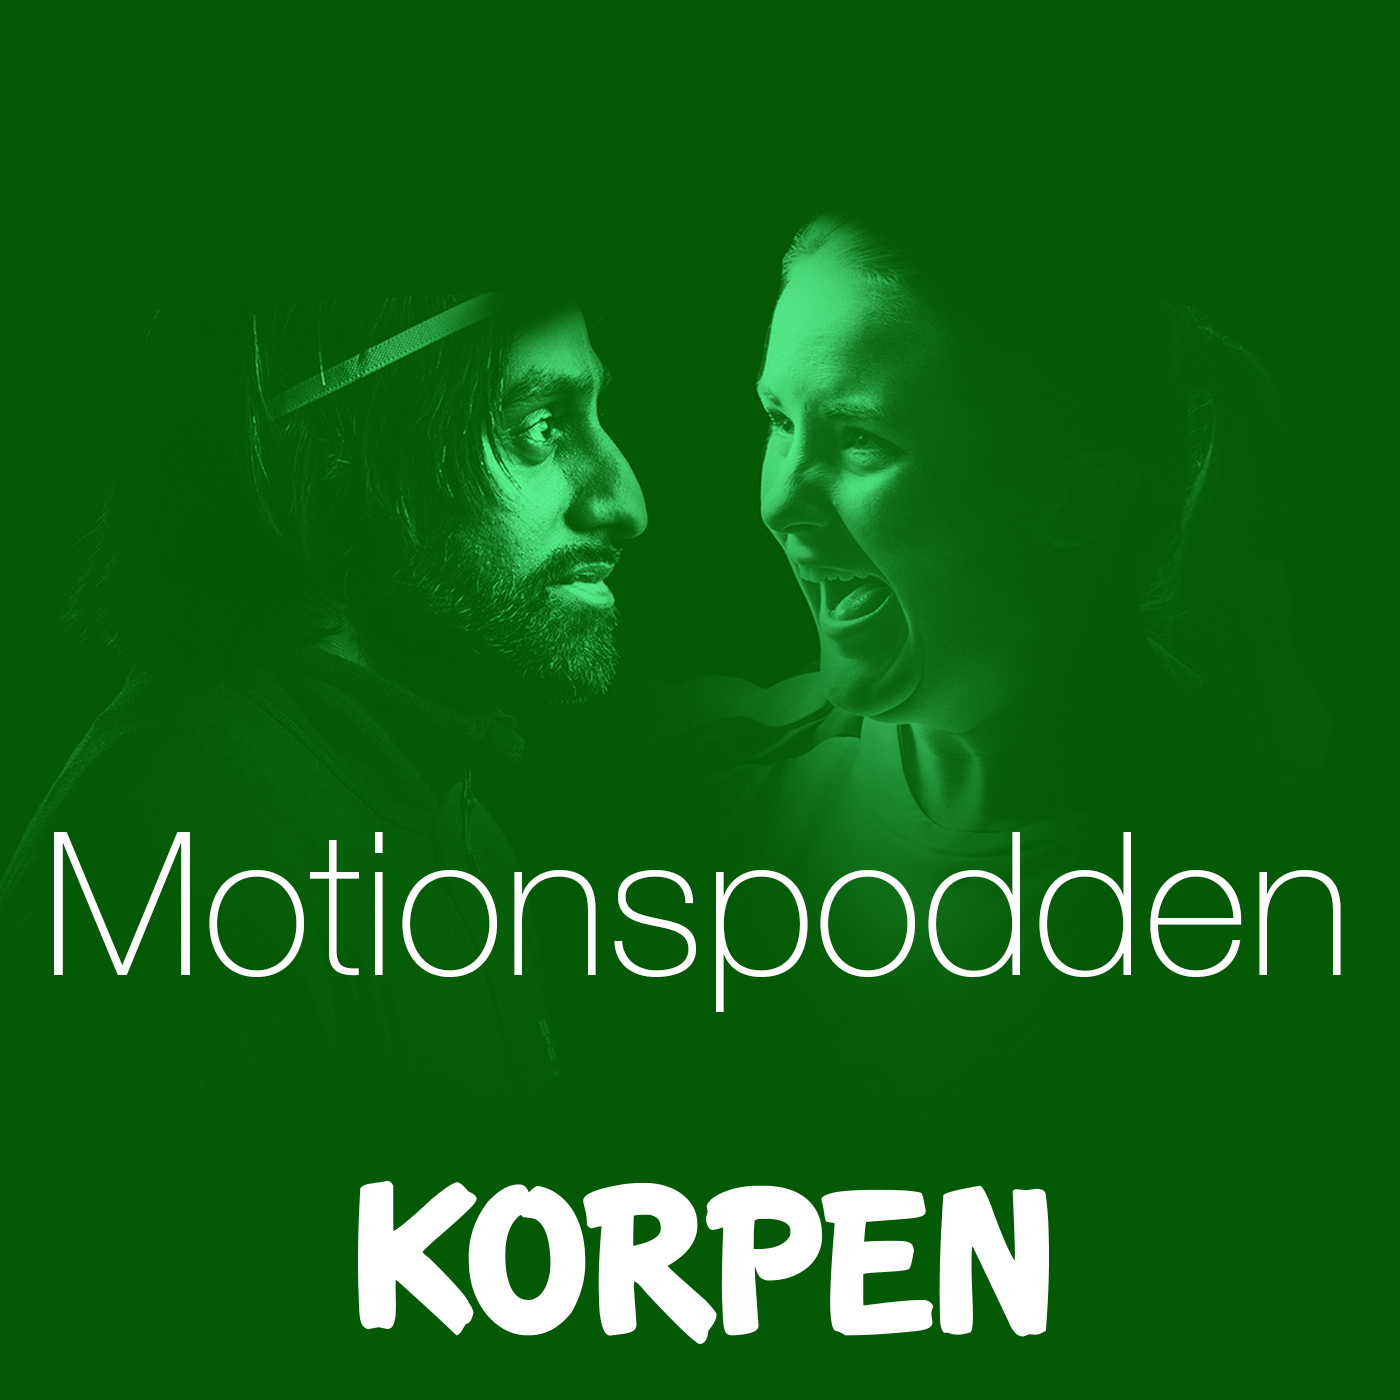 Motionspodden